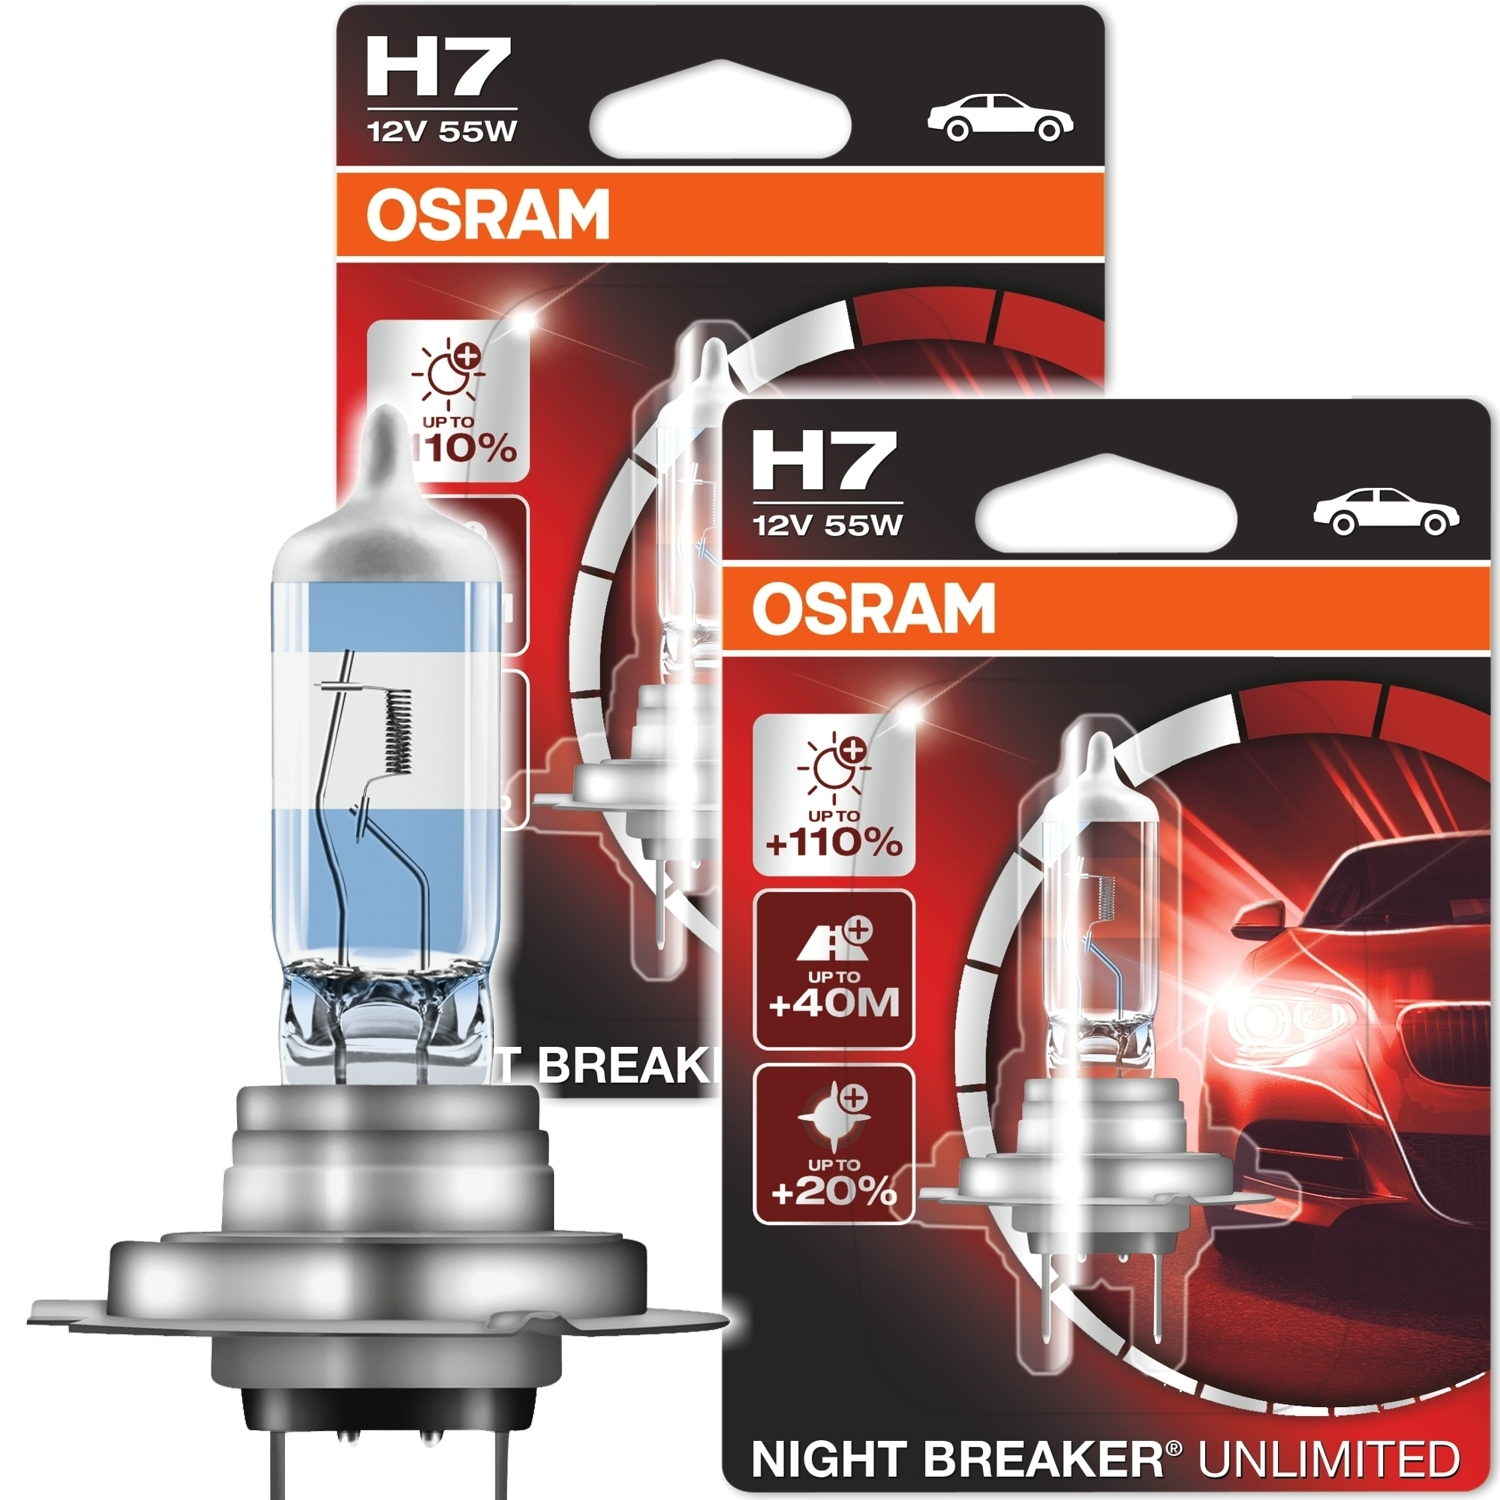 2x osram halogen lampe h7 night breaker unlimited 55w 12v. Black Bedroom Furniture Sets. Home Design Ideas